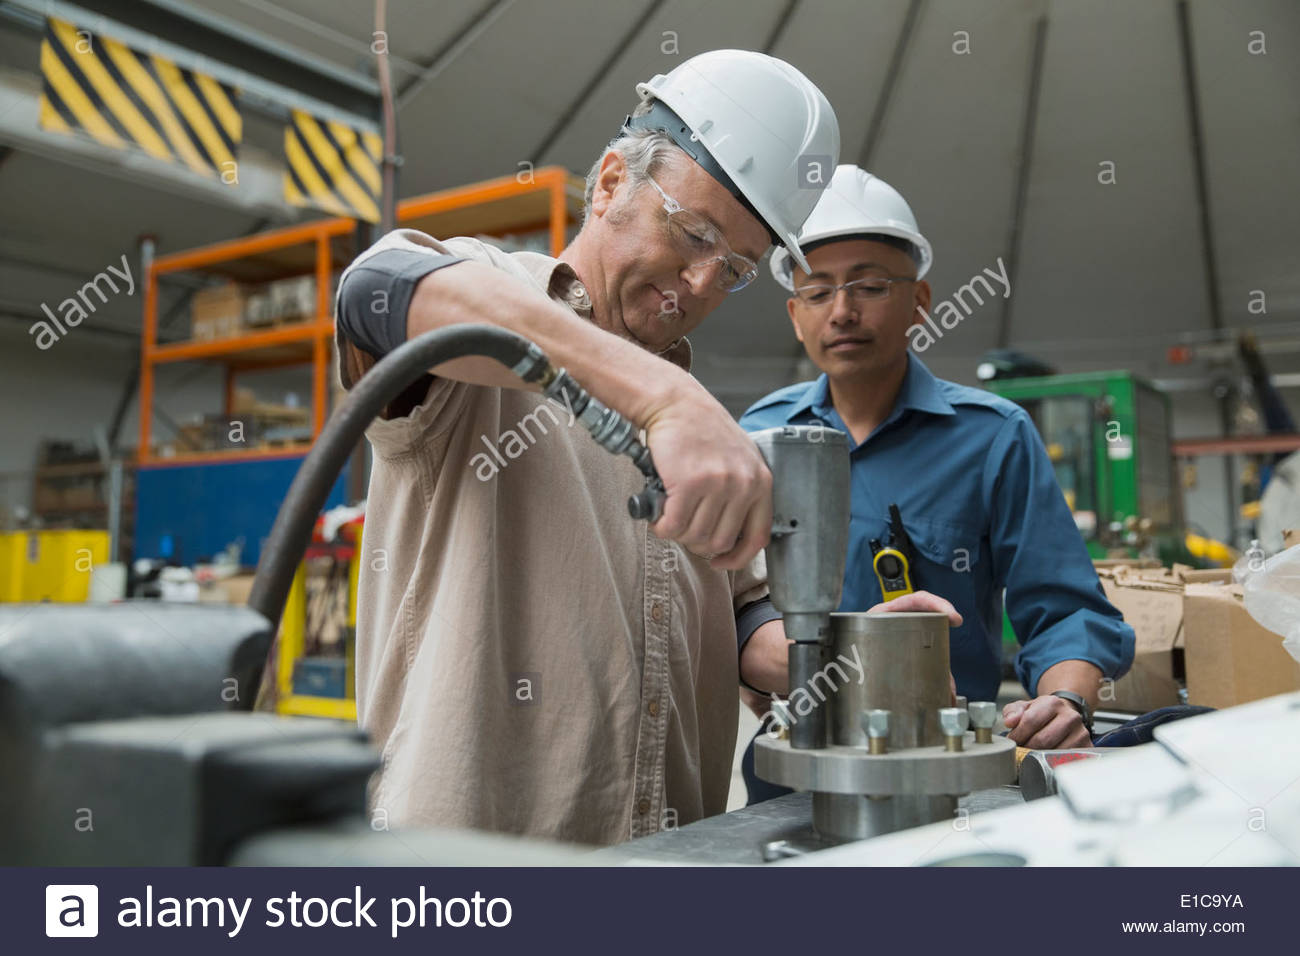 Workers using power drill in manufacturing plant - Stock Image